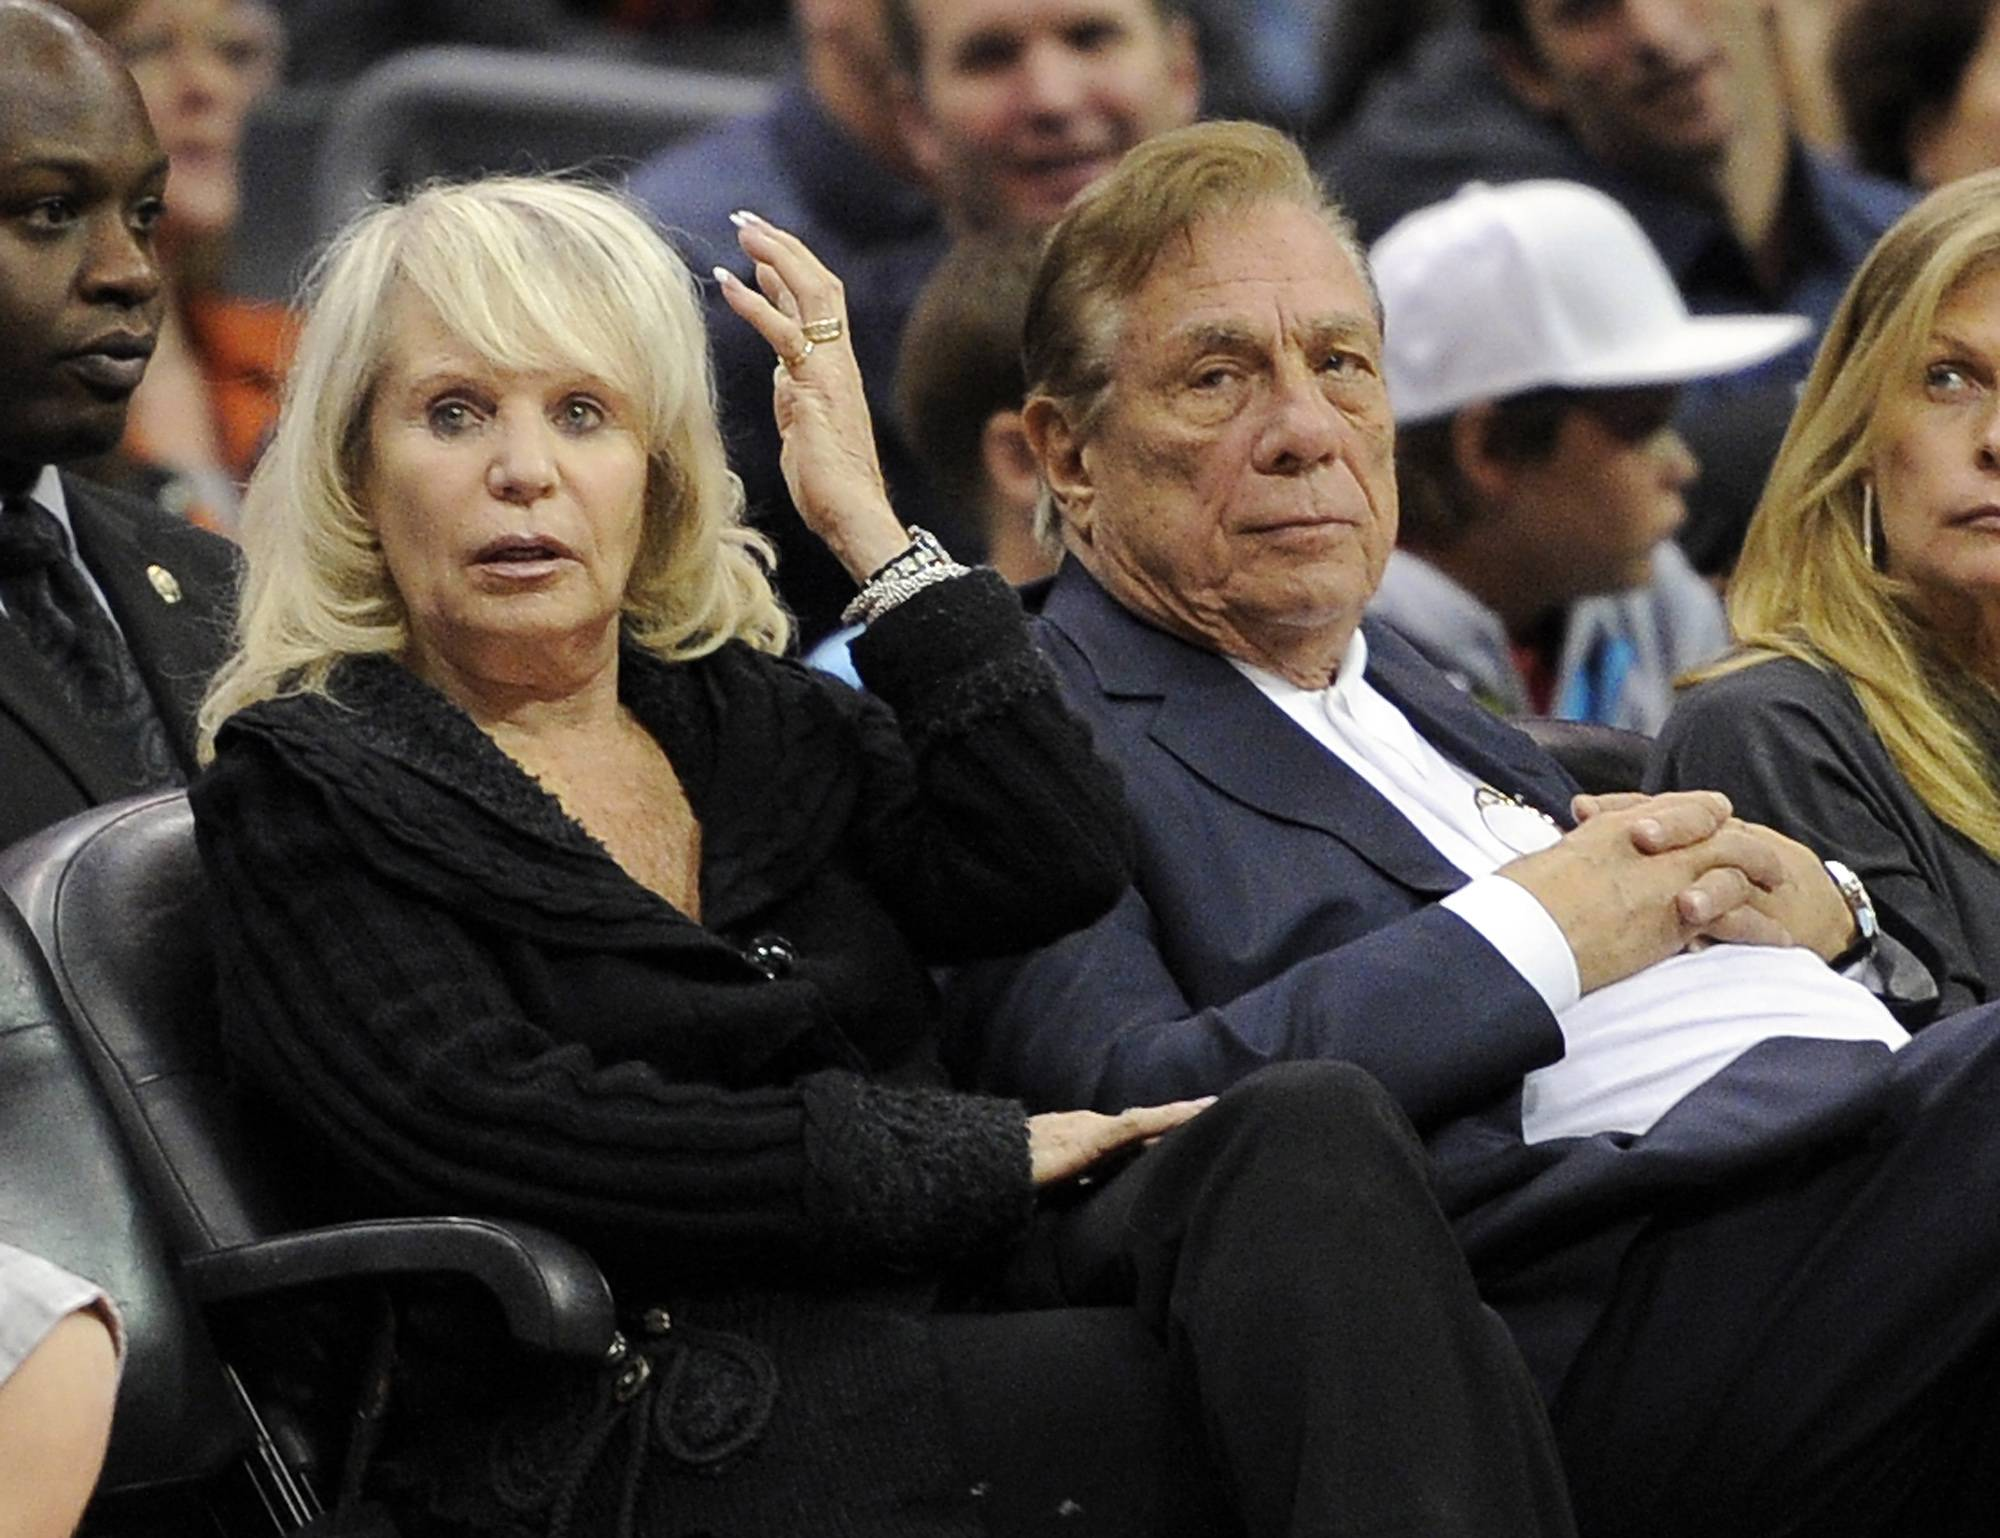 FILE - In this Nov. 12, 2010, file photo, Shelly Sterling sits with her husband, Donald Sterling, right, during the Los Angeles Clippers' NBA basketball game against the Detroit Pistons in Los Angeles. With a $2 billion sale of the Clippers hanging in the balance, a judge is set to determine Monday, June 30, 2014, if the terms of a family trust alone are enough to confirm Donald Sterling was properly removed as trustee and allow his estranged wife to sell the team without his consent.